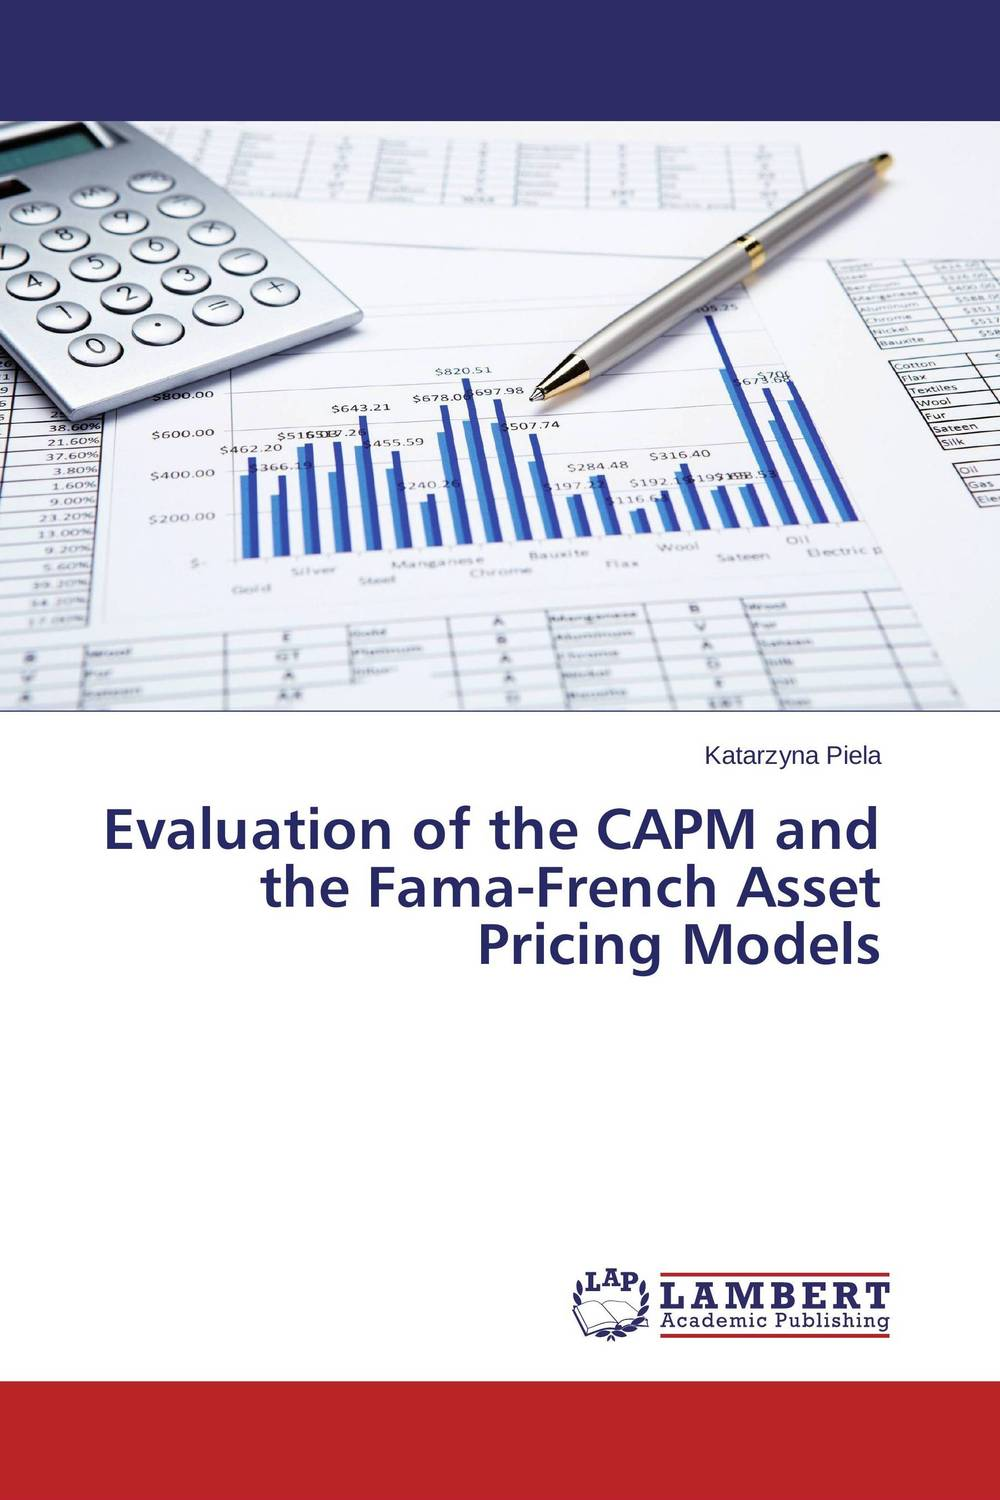 Evaluation of the CAPM and the Fama-French Asset Pricing Models the french lieutenant s woman